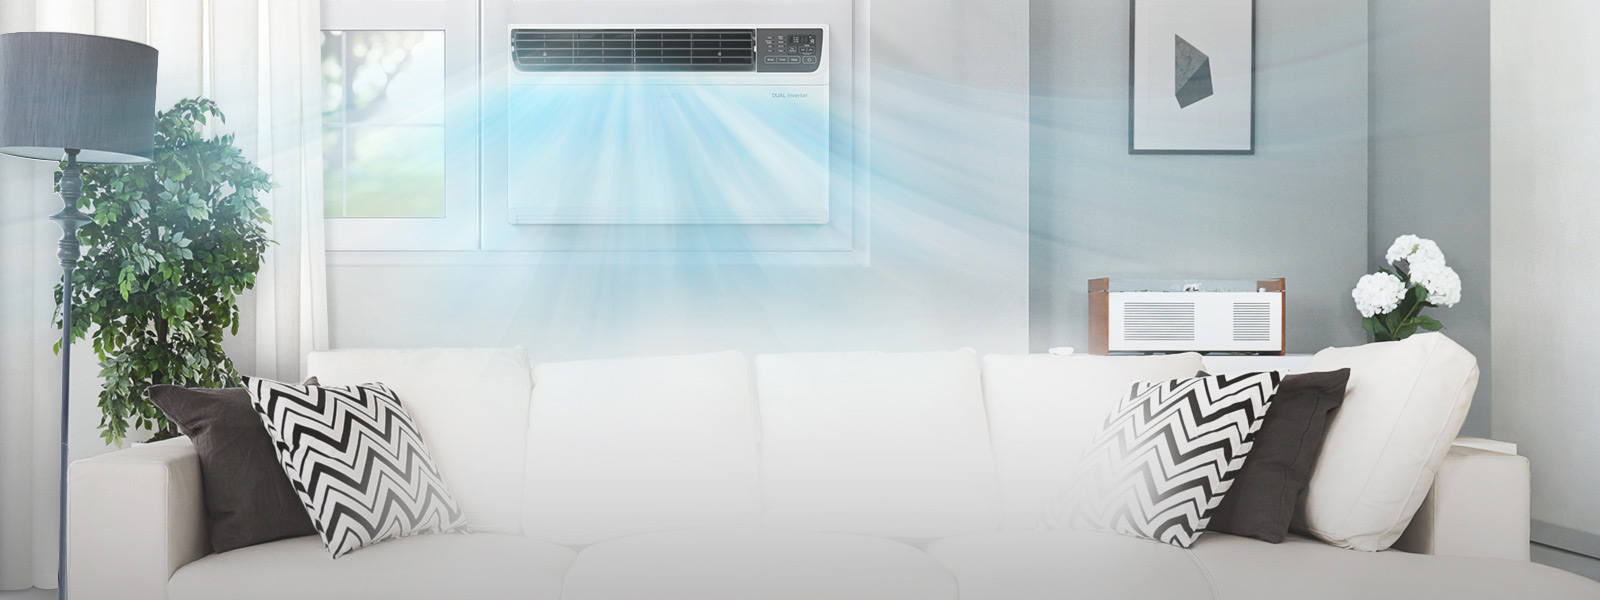 The Importance of Maintaining an Air Conditioner Unit for Life in the South